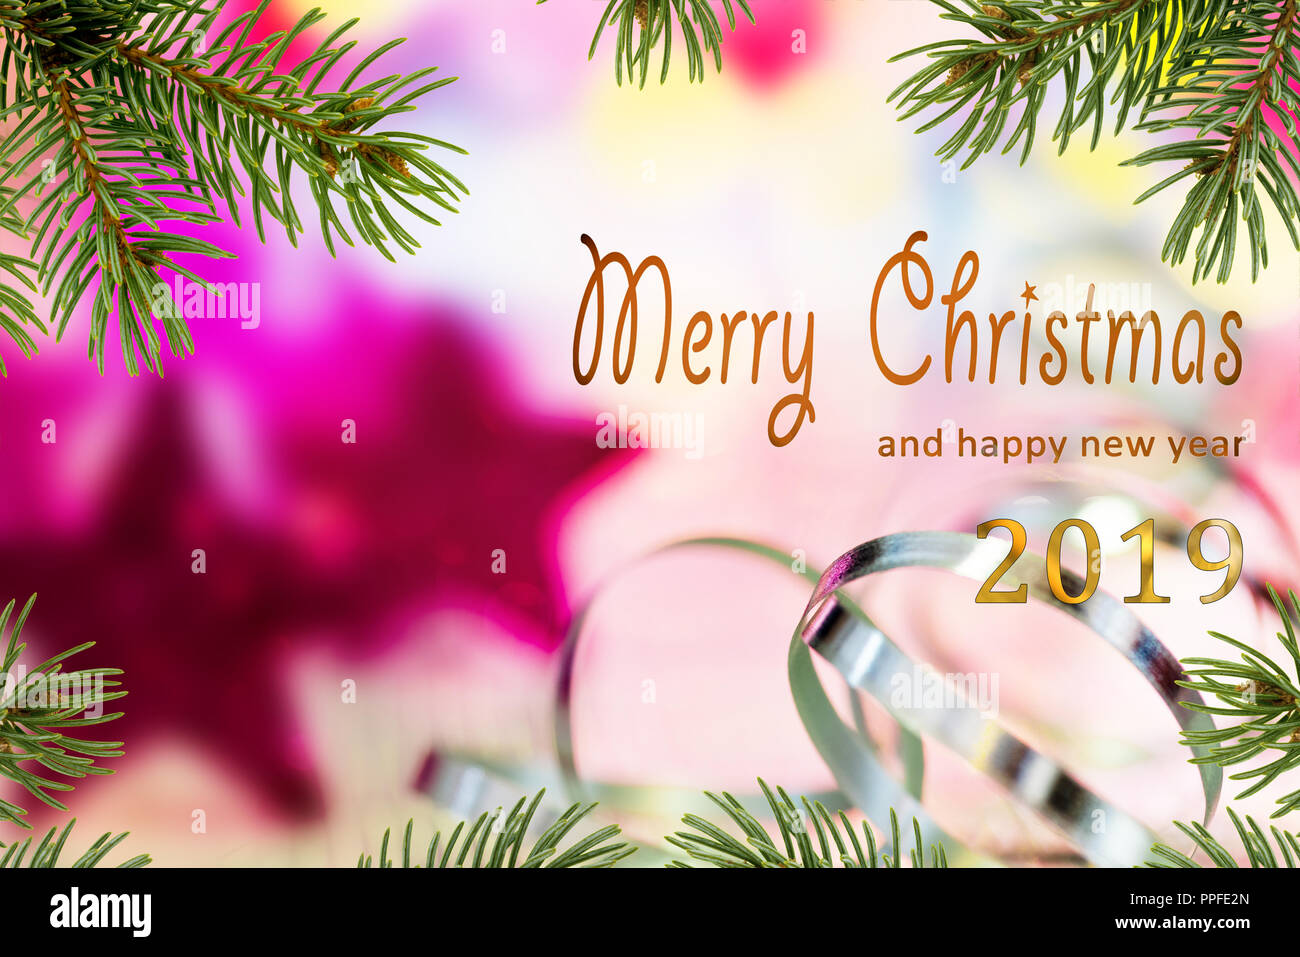 Christmas background with Merry Christmas and happy new year 2019 ...